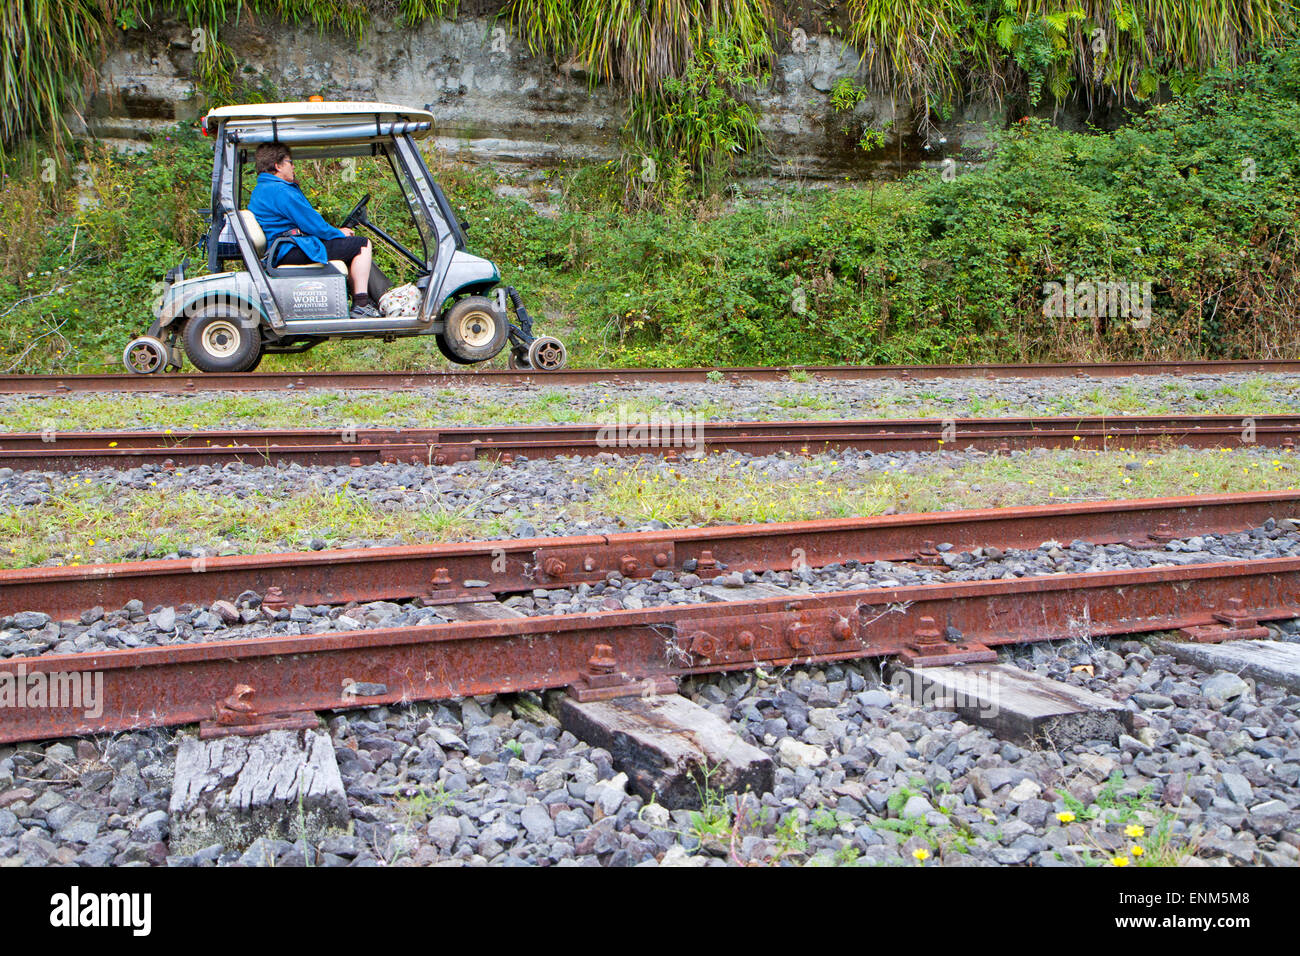 Converted golf carts on the old Forgotten World railway in New Zealand - Stock Image